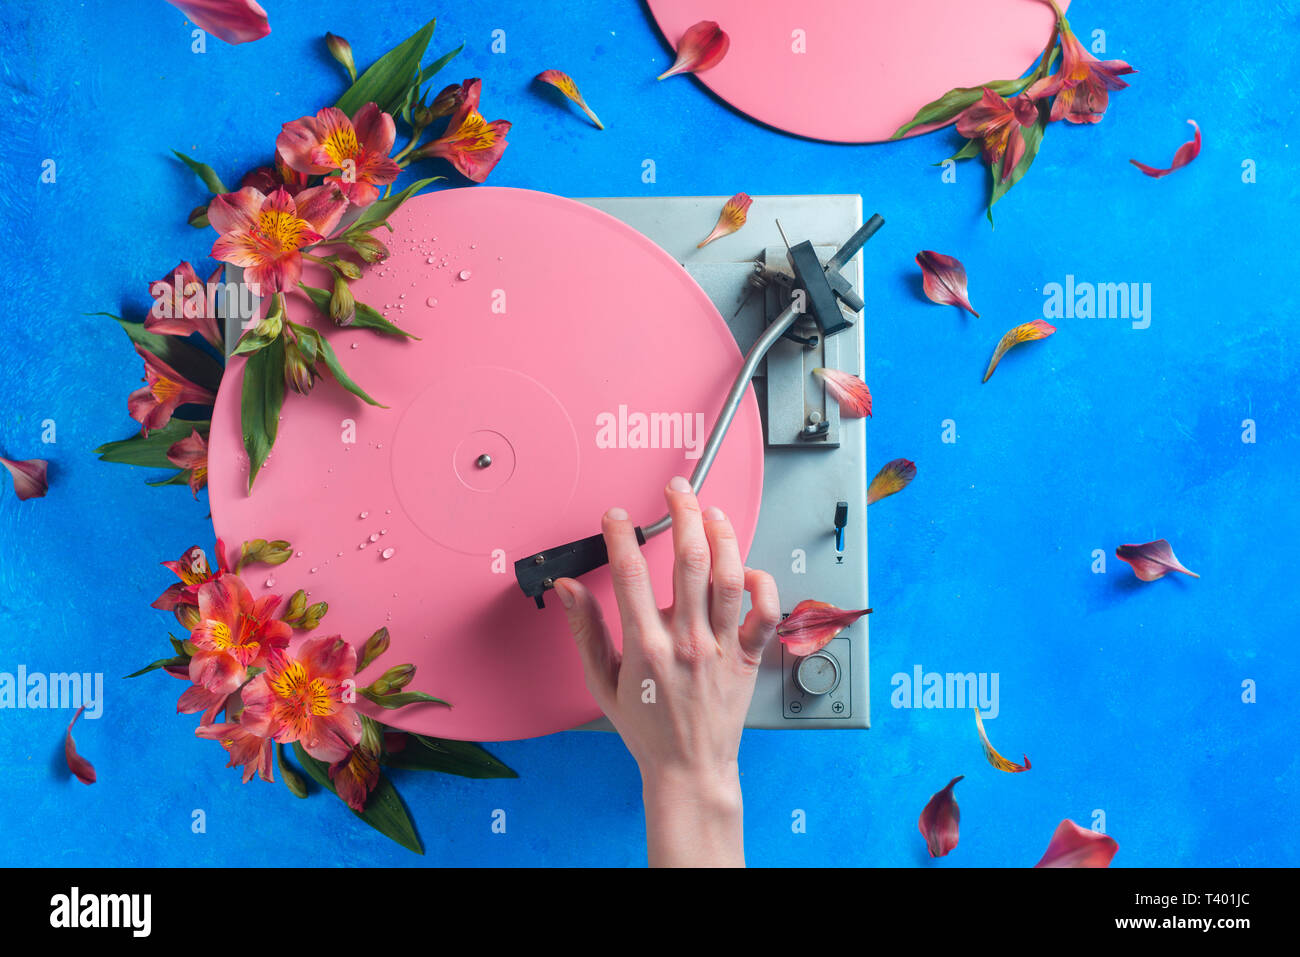 Colorful vinyl record player with petals and leaves. Pink pop up conceptual flat lay with flowers. Spring music still life - Stock Image